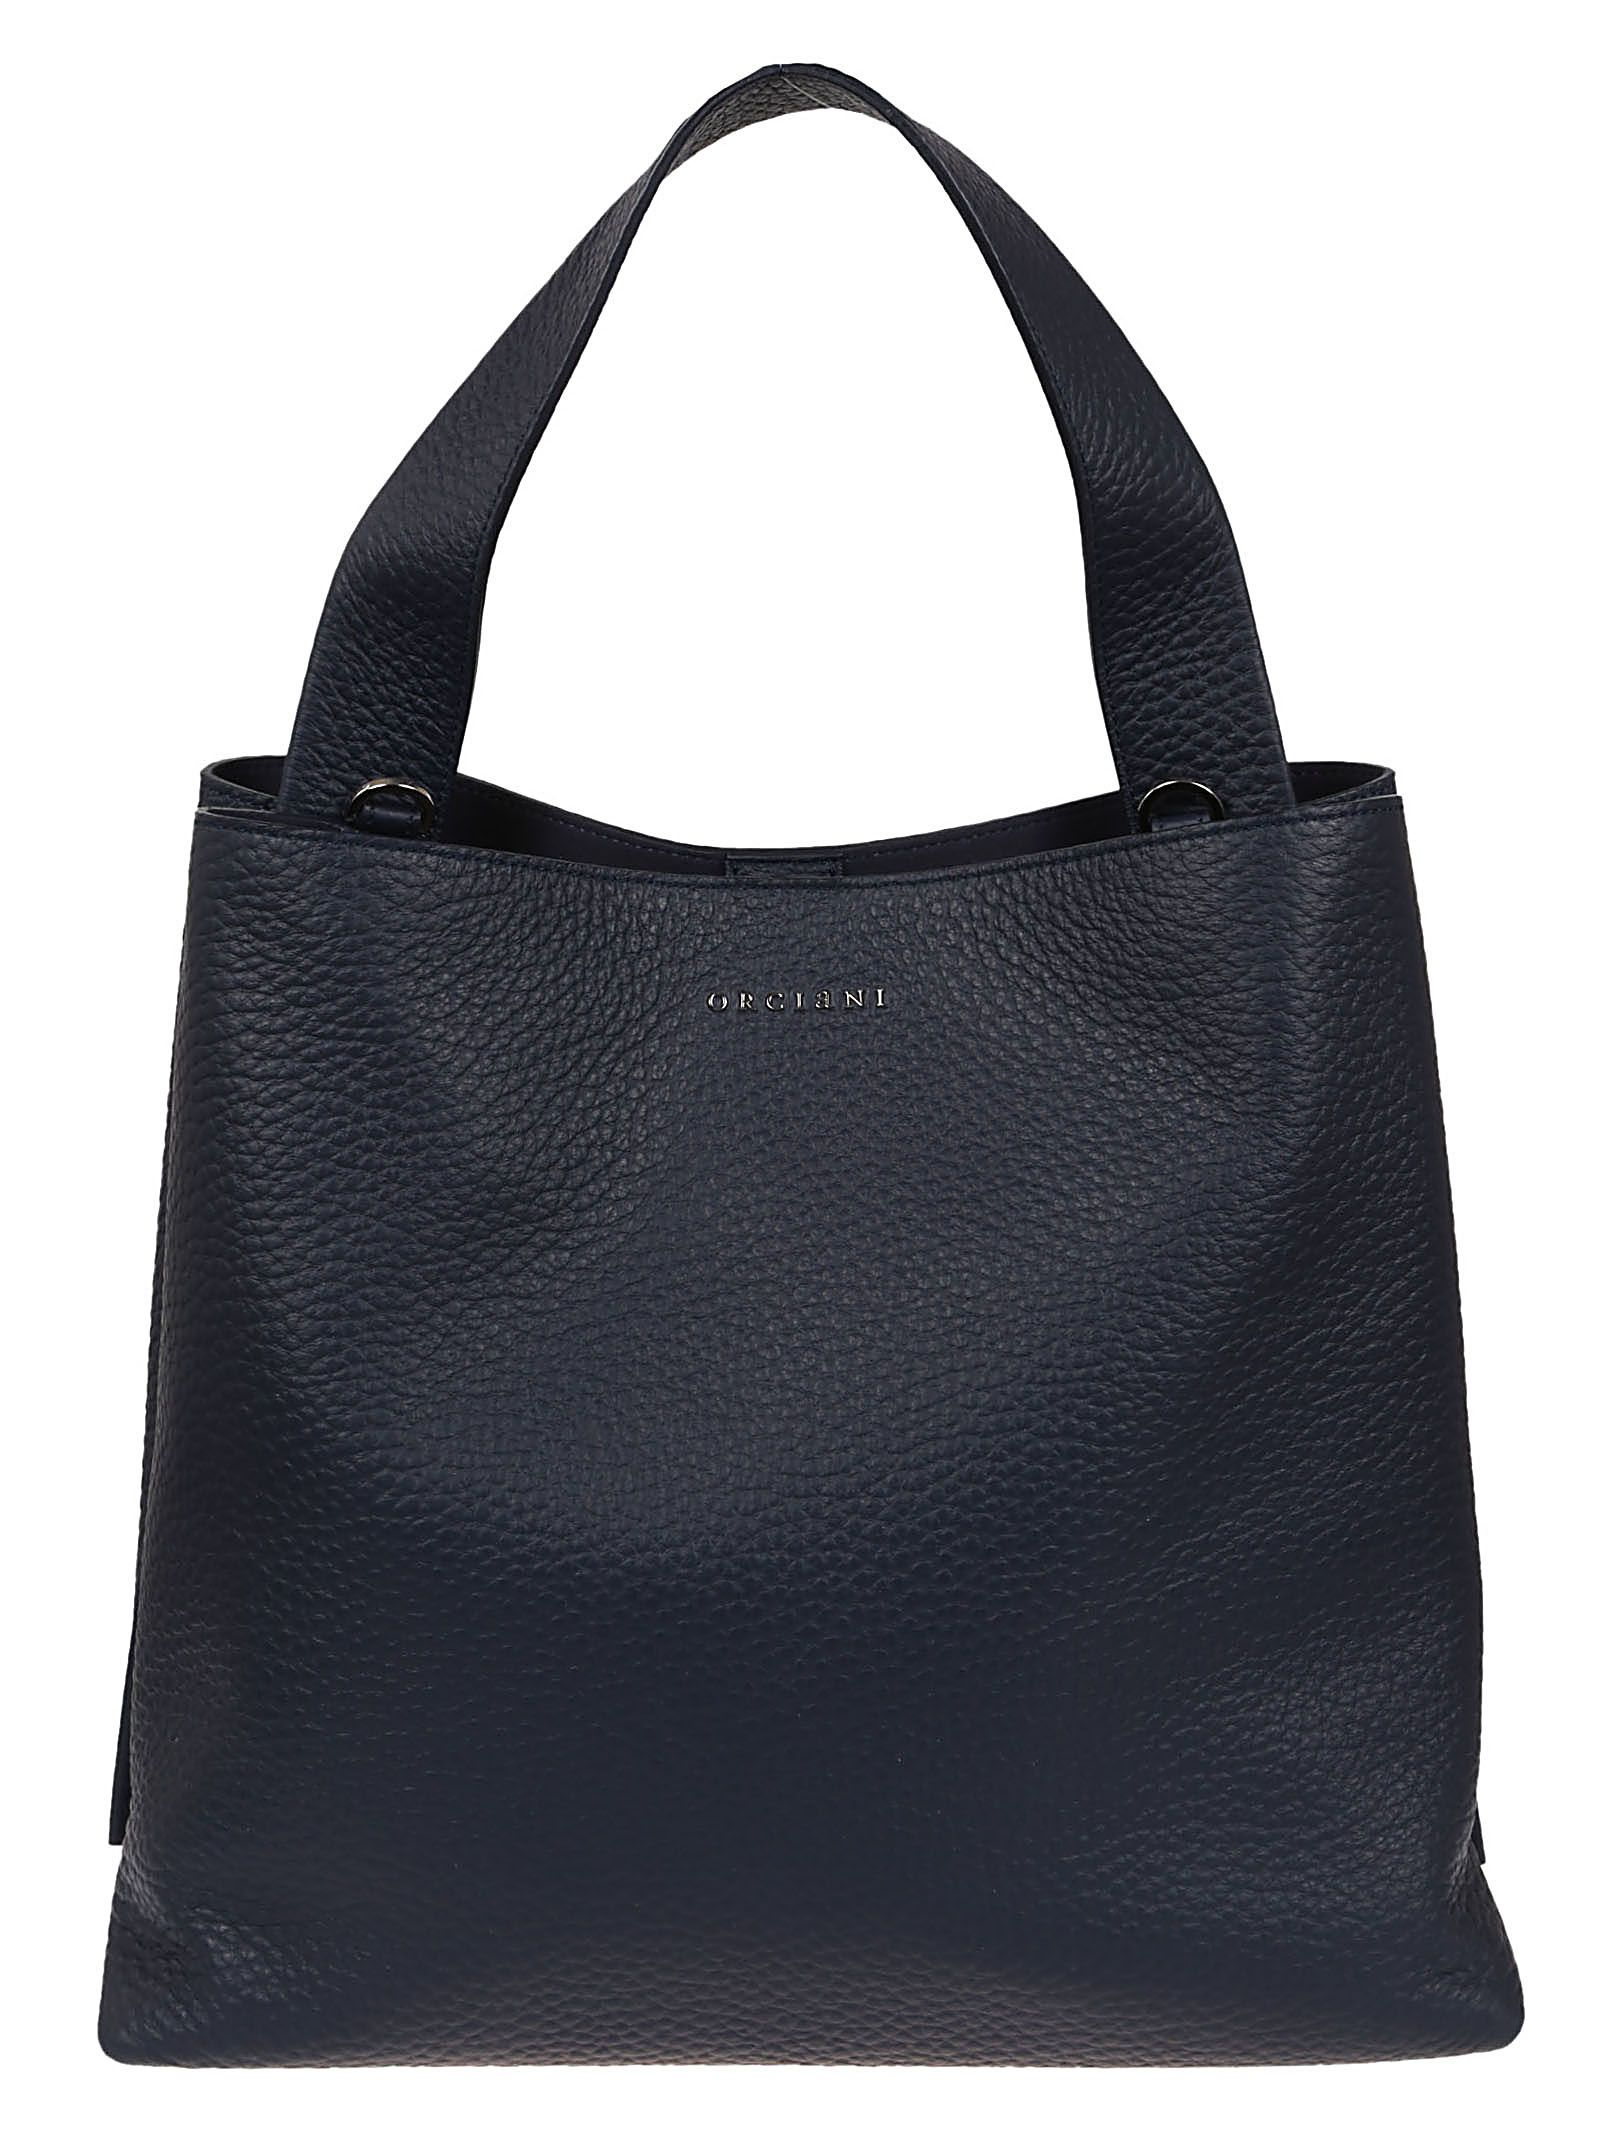 Orciani PLAQUE LOGO TOTE